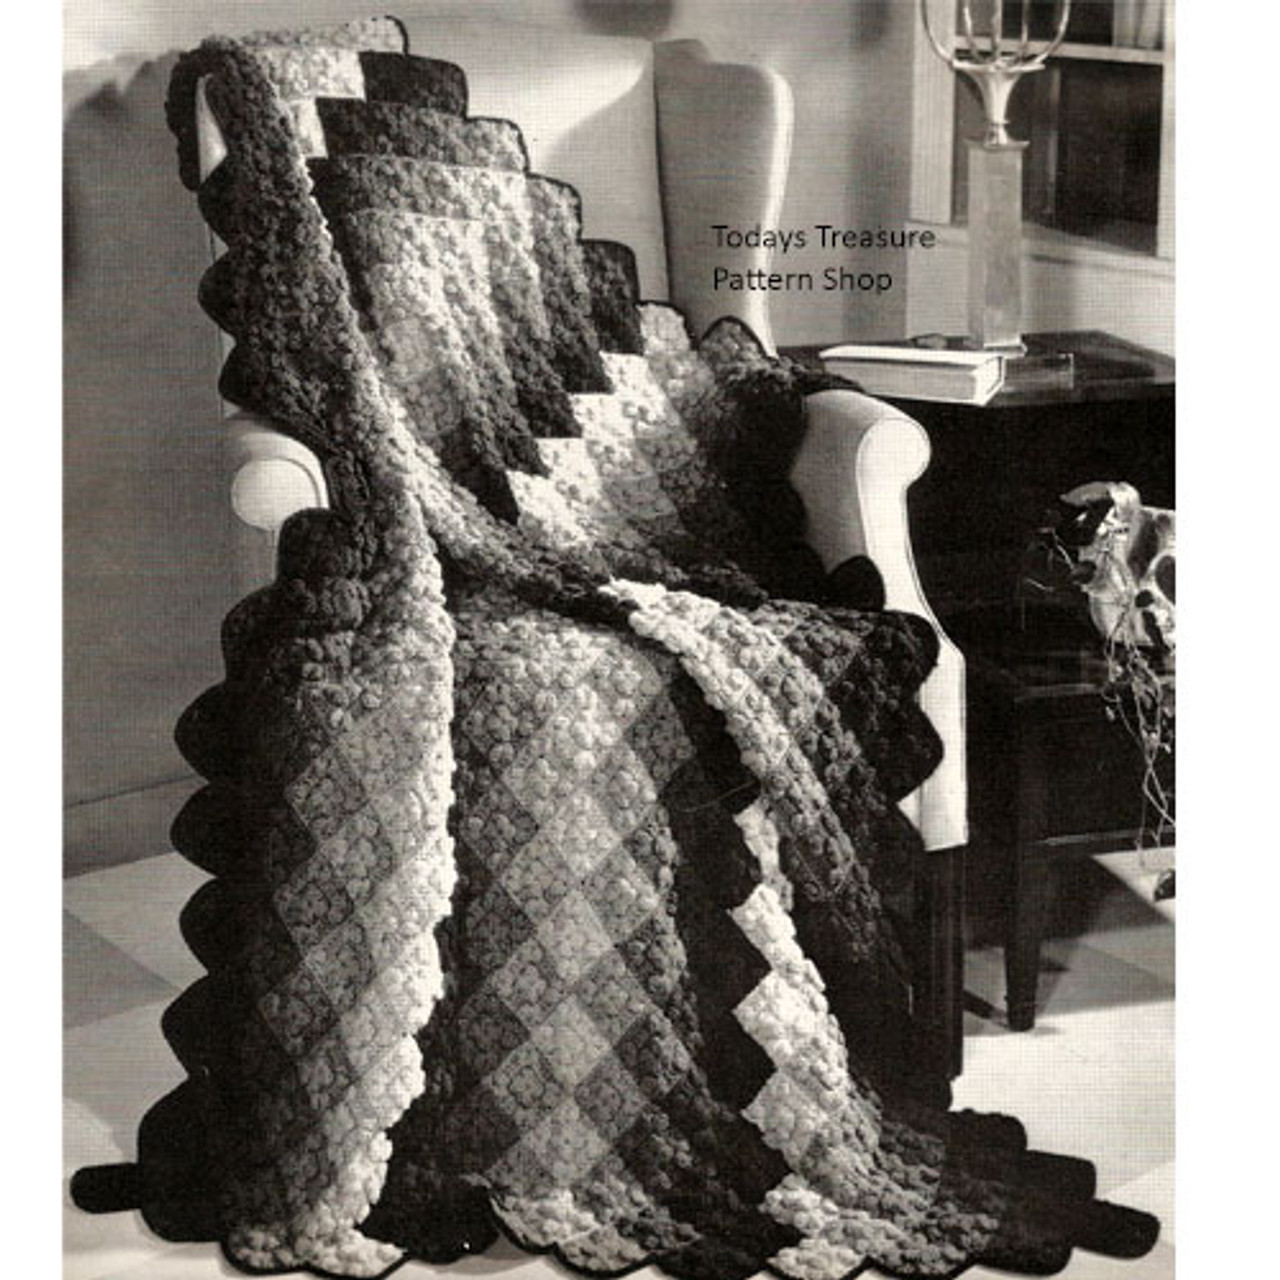 Vintage 1950s Crochet afghan pattern, striped in popcorn stitch